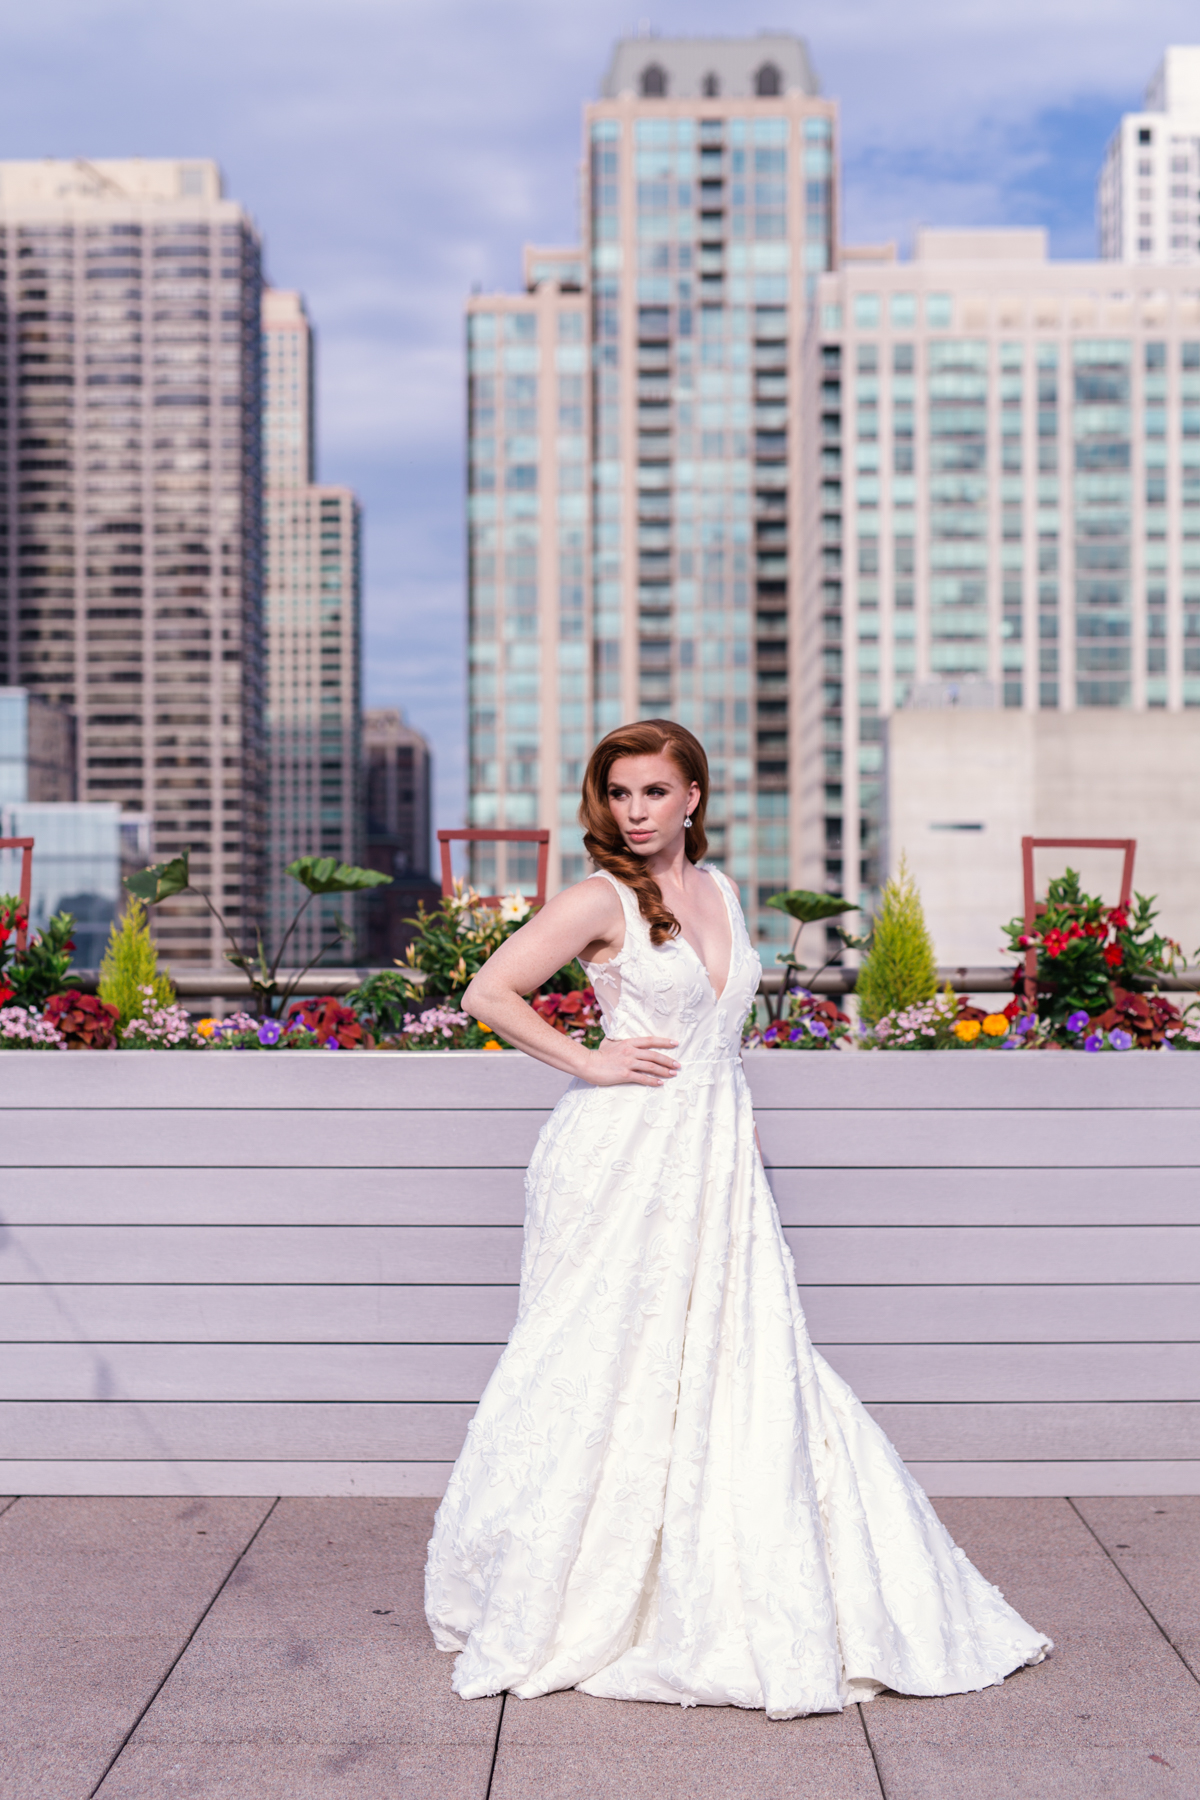 Rooftop-bridal-shoot-by-Emma-Mullins-Photography-4